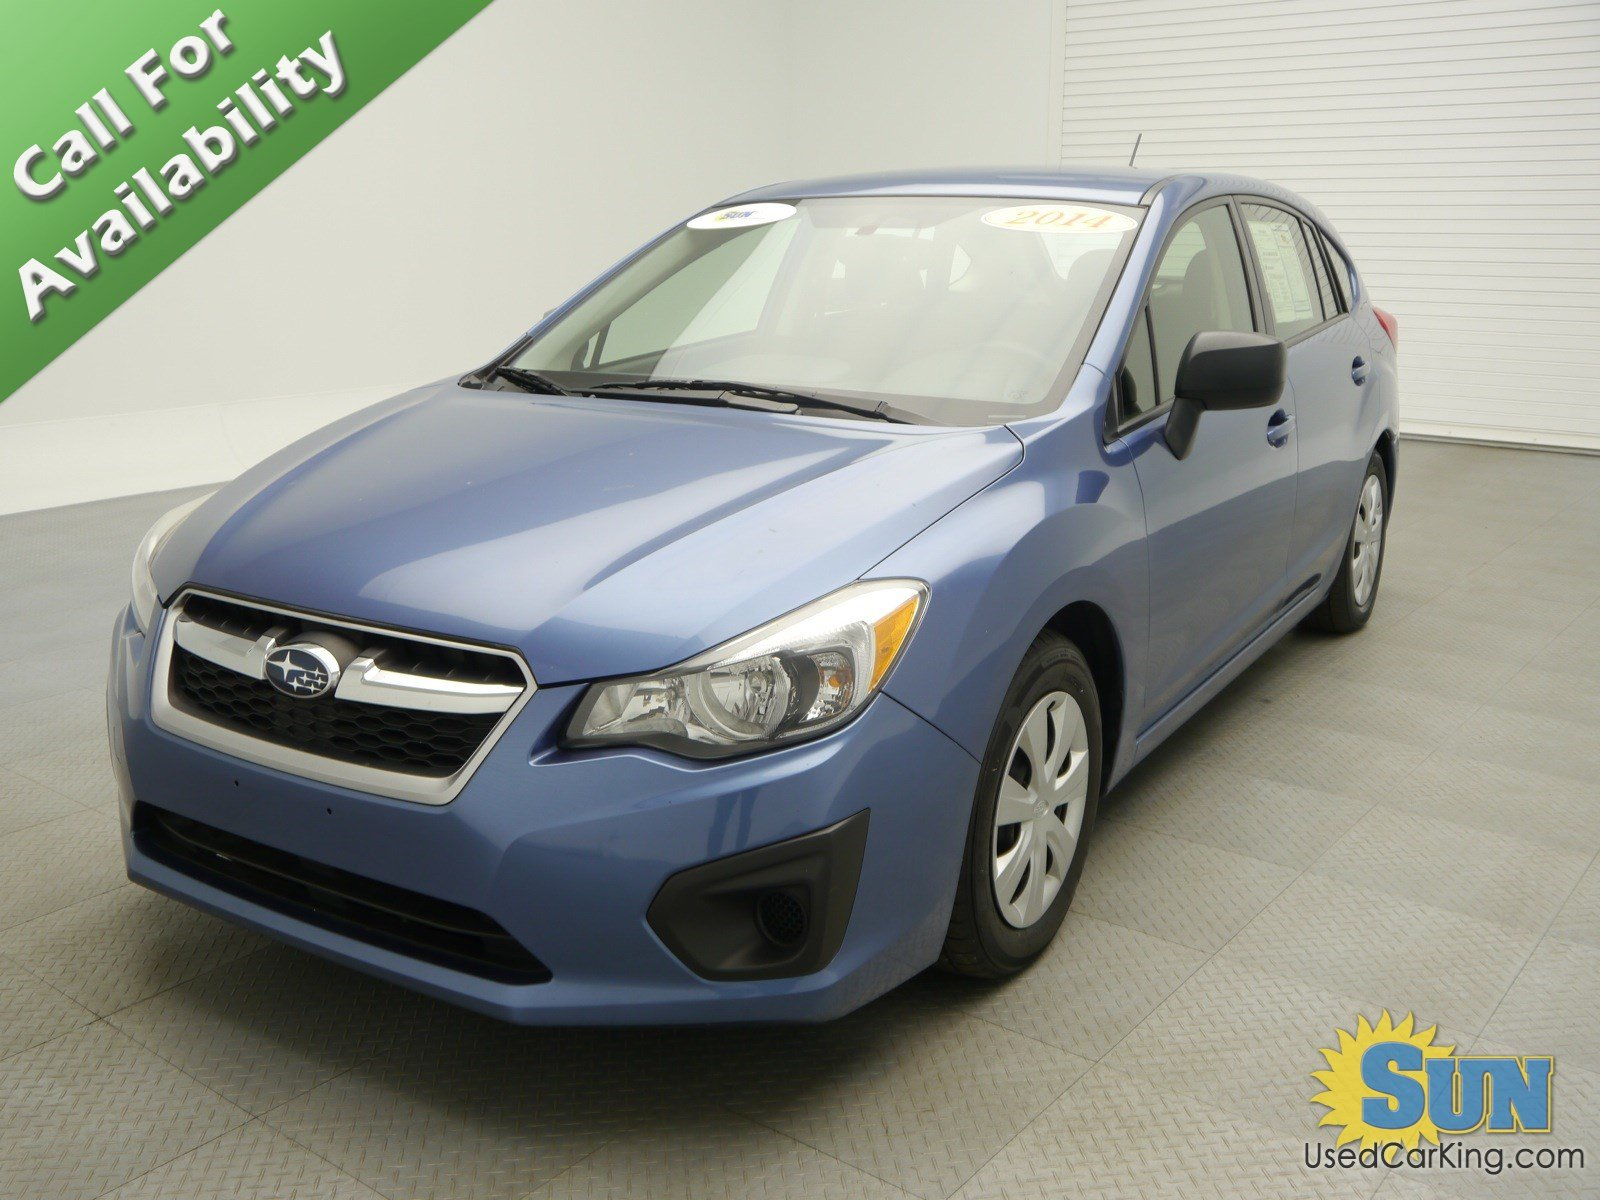 pre owned 2014 subaru impreza wagon awd hatchback chittenango p51101 chittenango ny. Black Bedroom Furniture Sets. Home Design Ideas